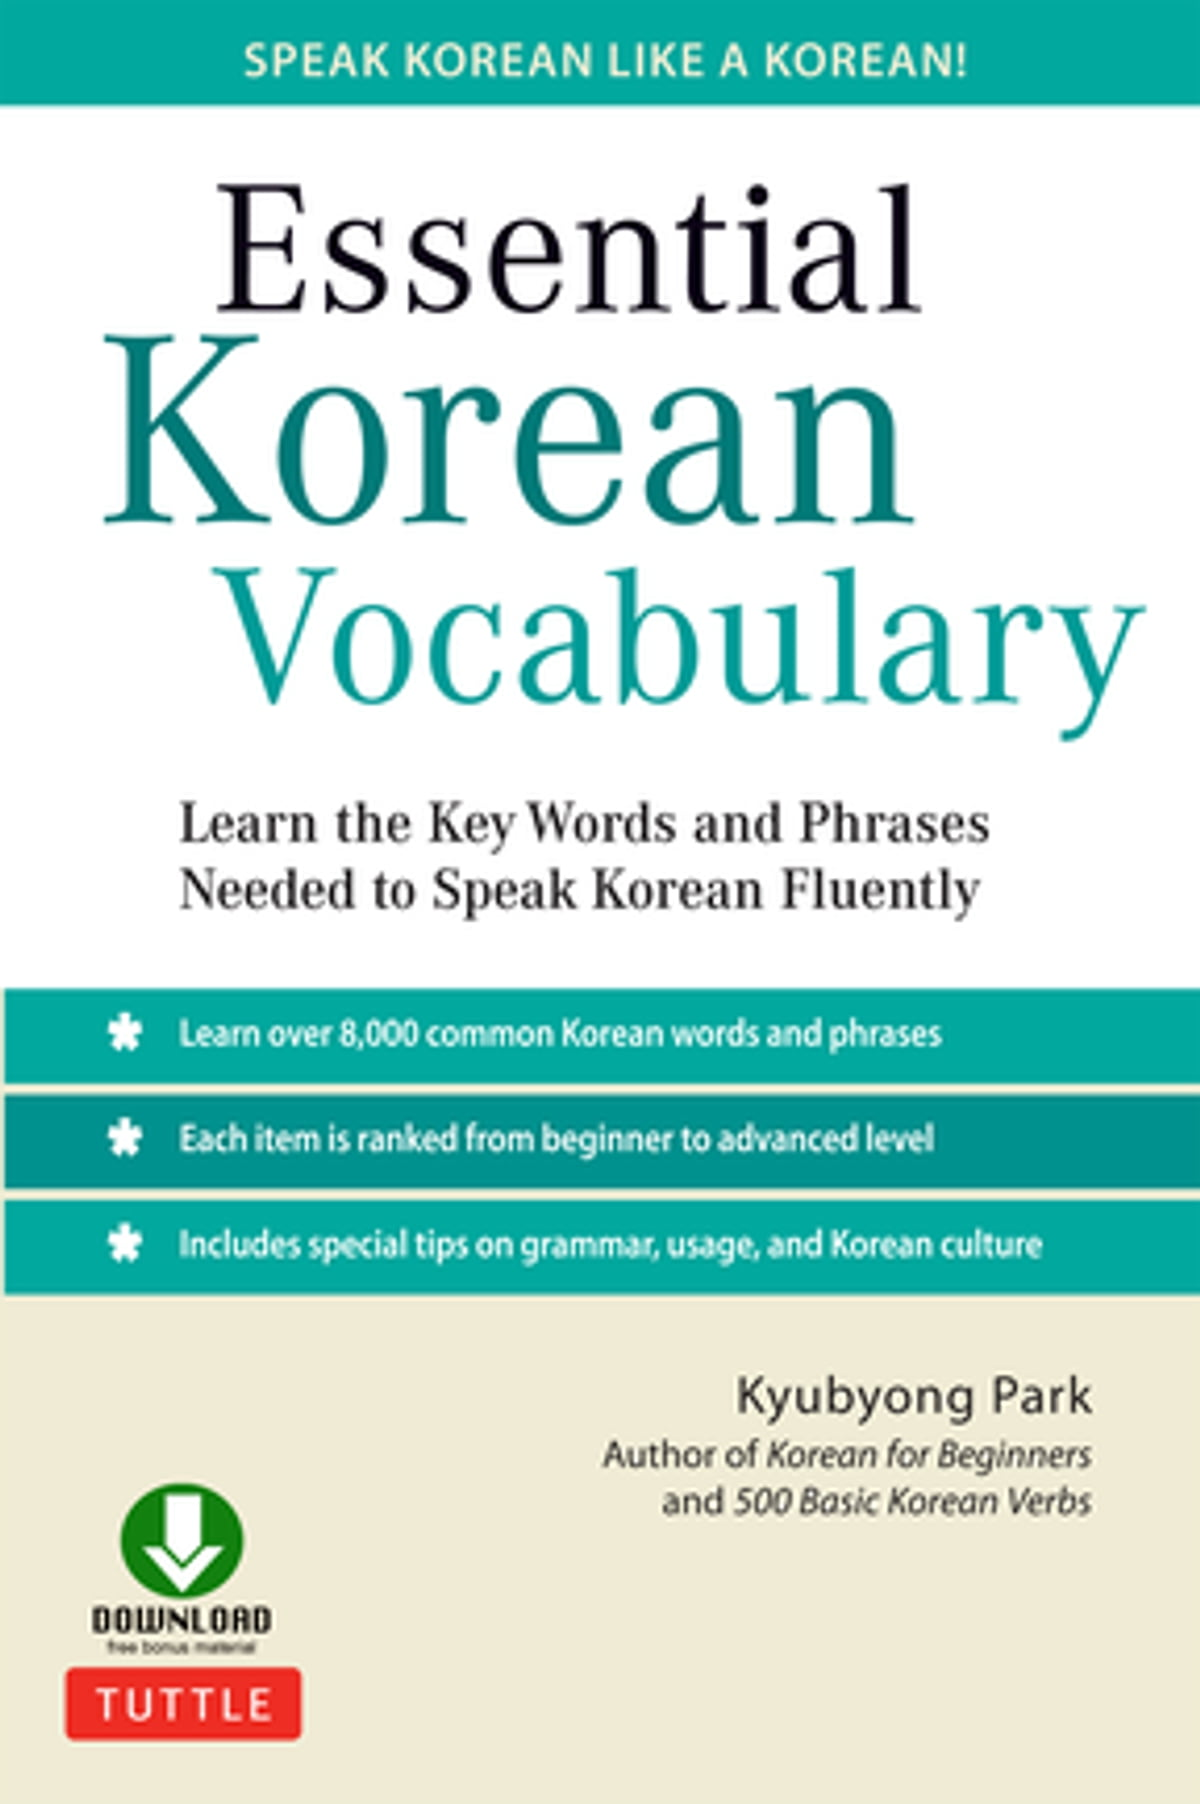 Essential Korean Vocabulary Ebook By Kyubyong Park